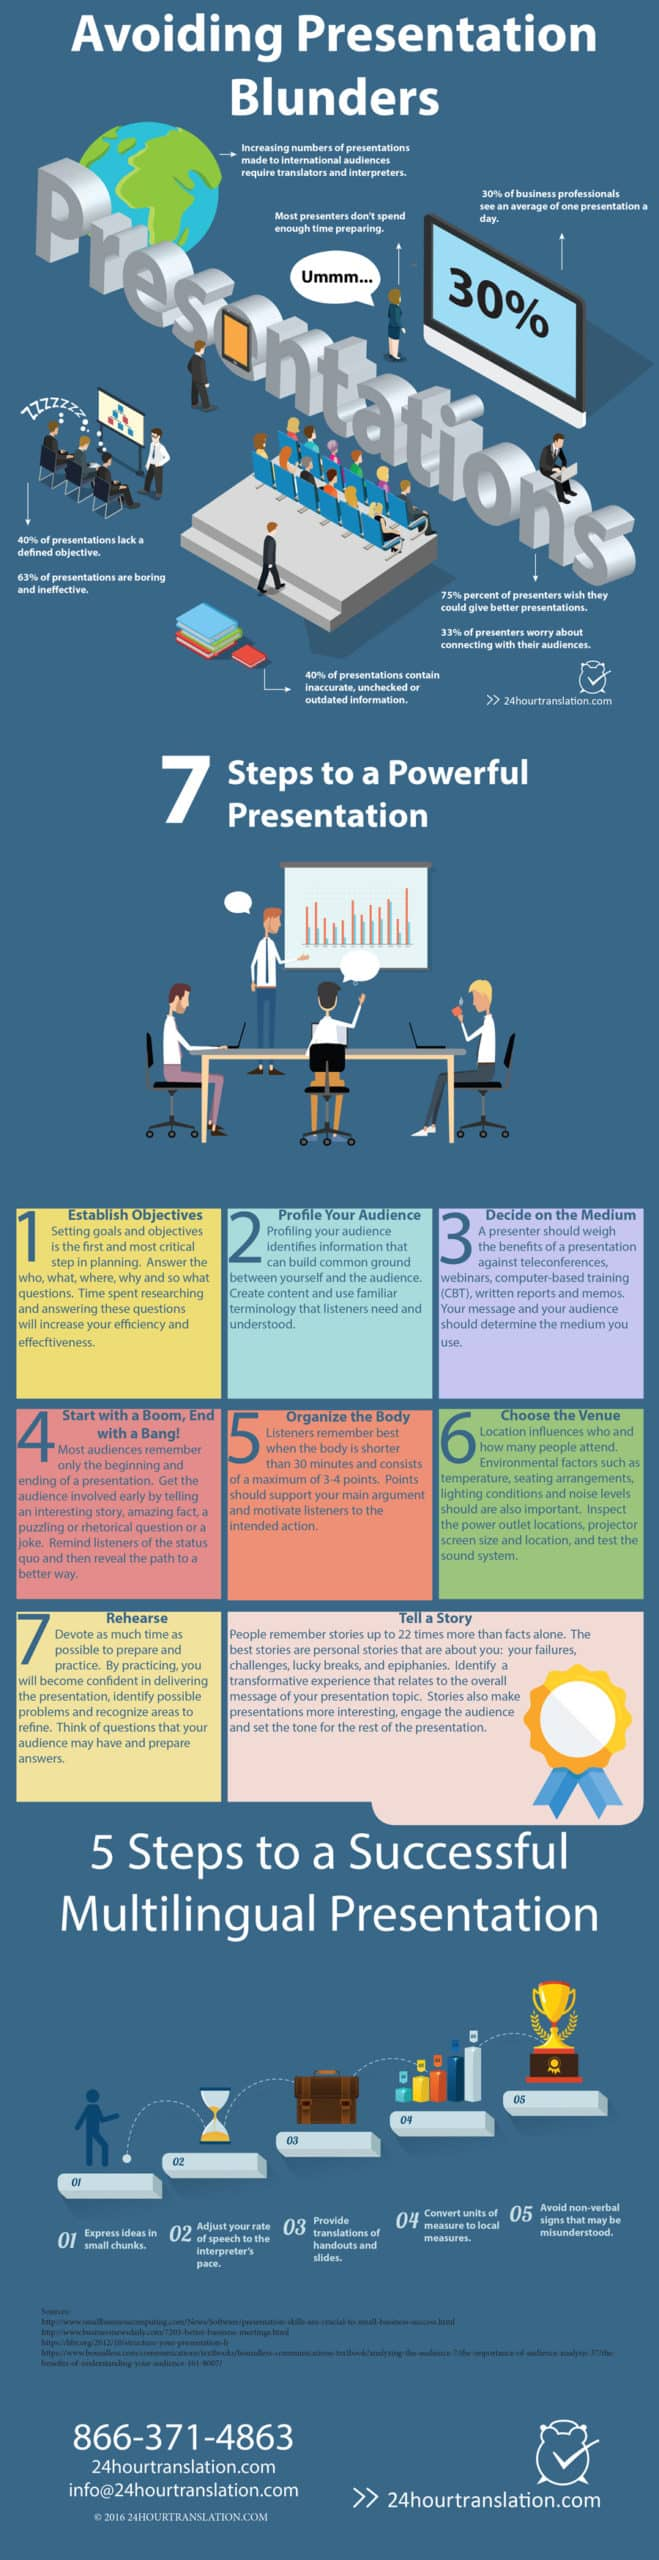 This infographic offers tips on developing presentations. It includes information on giving presentations to multilingual audiences. The topics nclude avoiding common mistakes, working with interpreters and translators, telling stories. setting goals and practicing.